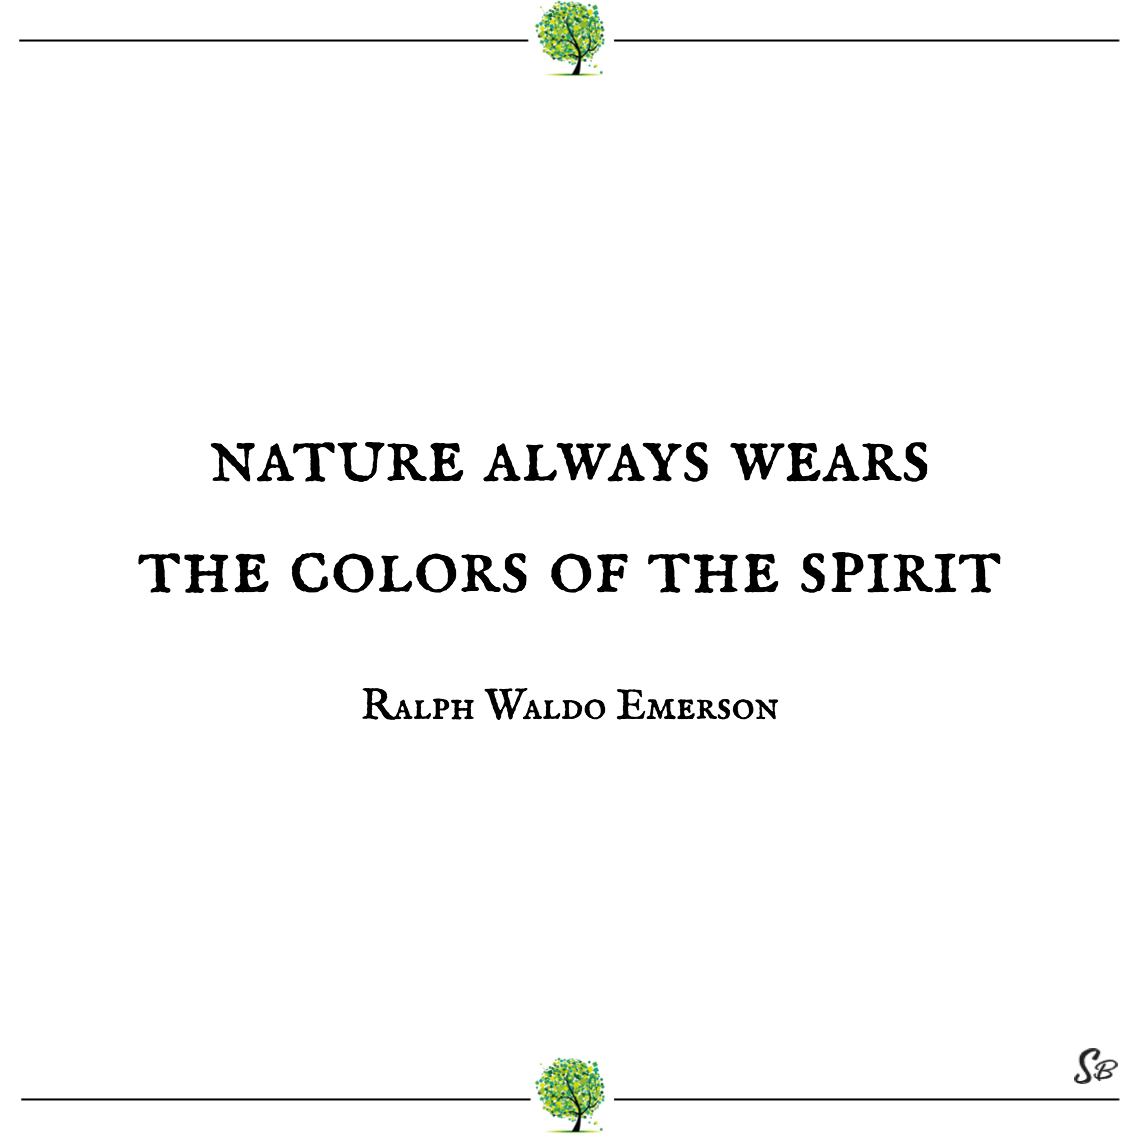 Nature always wears the colors of the spirit ralph waldo emerson